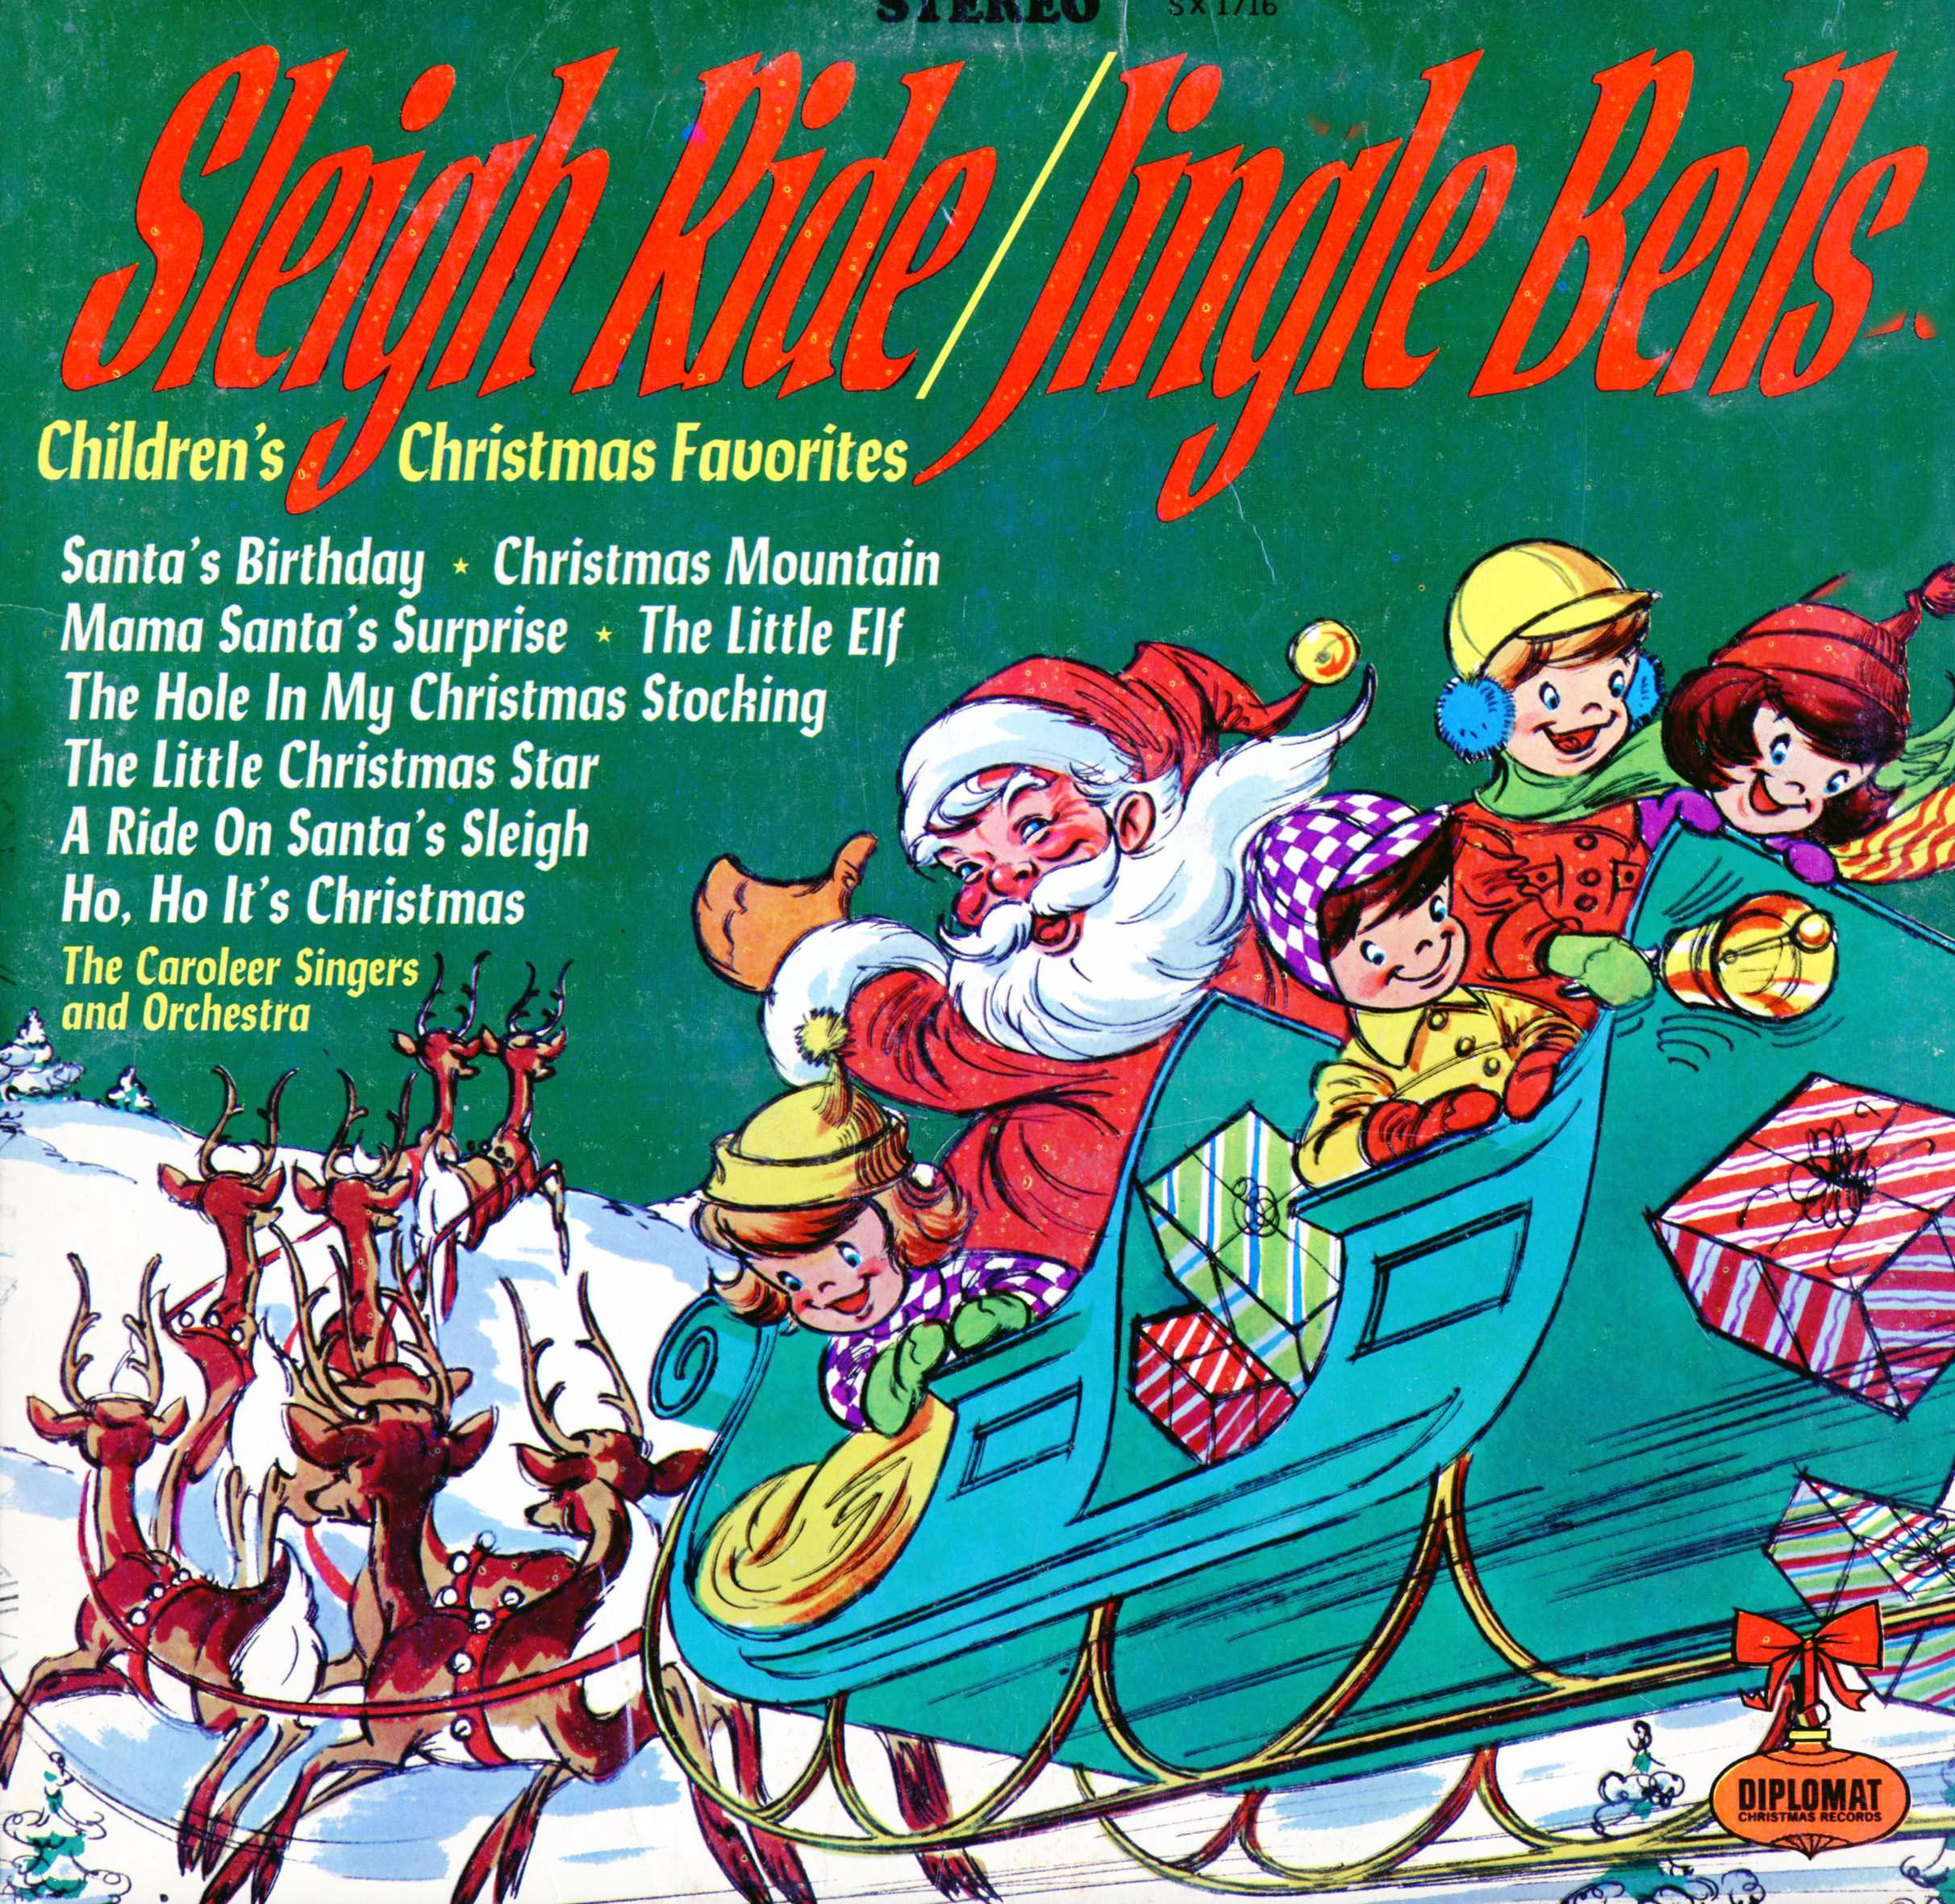 Sleigh Ride/ Jingle Bells album Caroleer Singers and Orchestra with ...